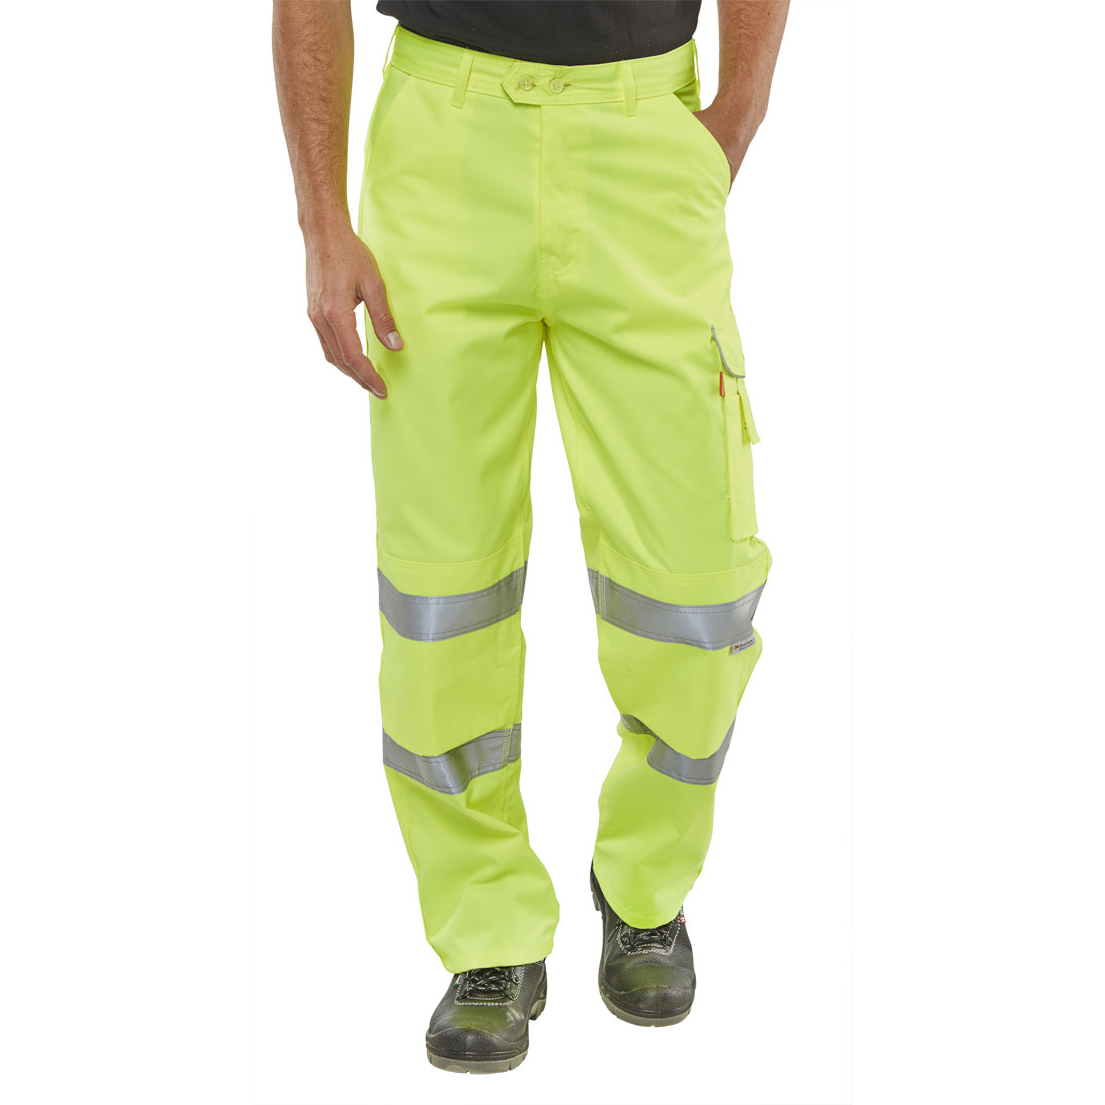 BSeen Trousers Polycotton Hi-Vis EN471 Saturn Yellow 34 Ref PCTENSY34 *Up to 3 Day Leadtime*